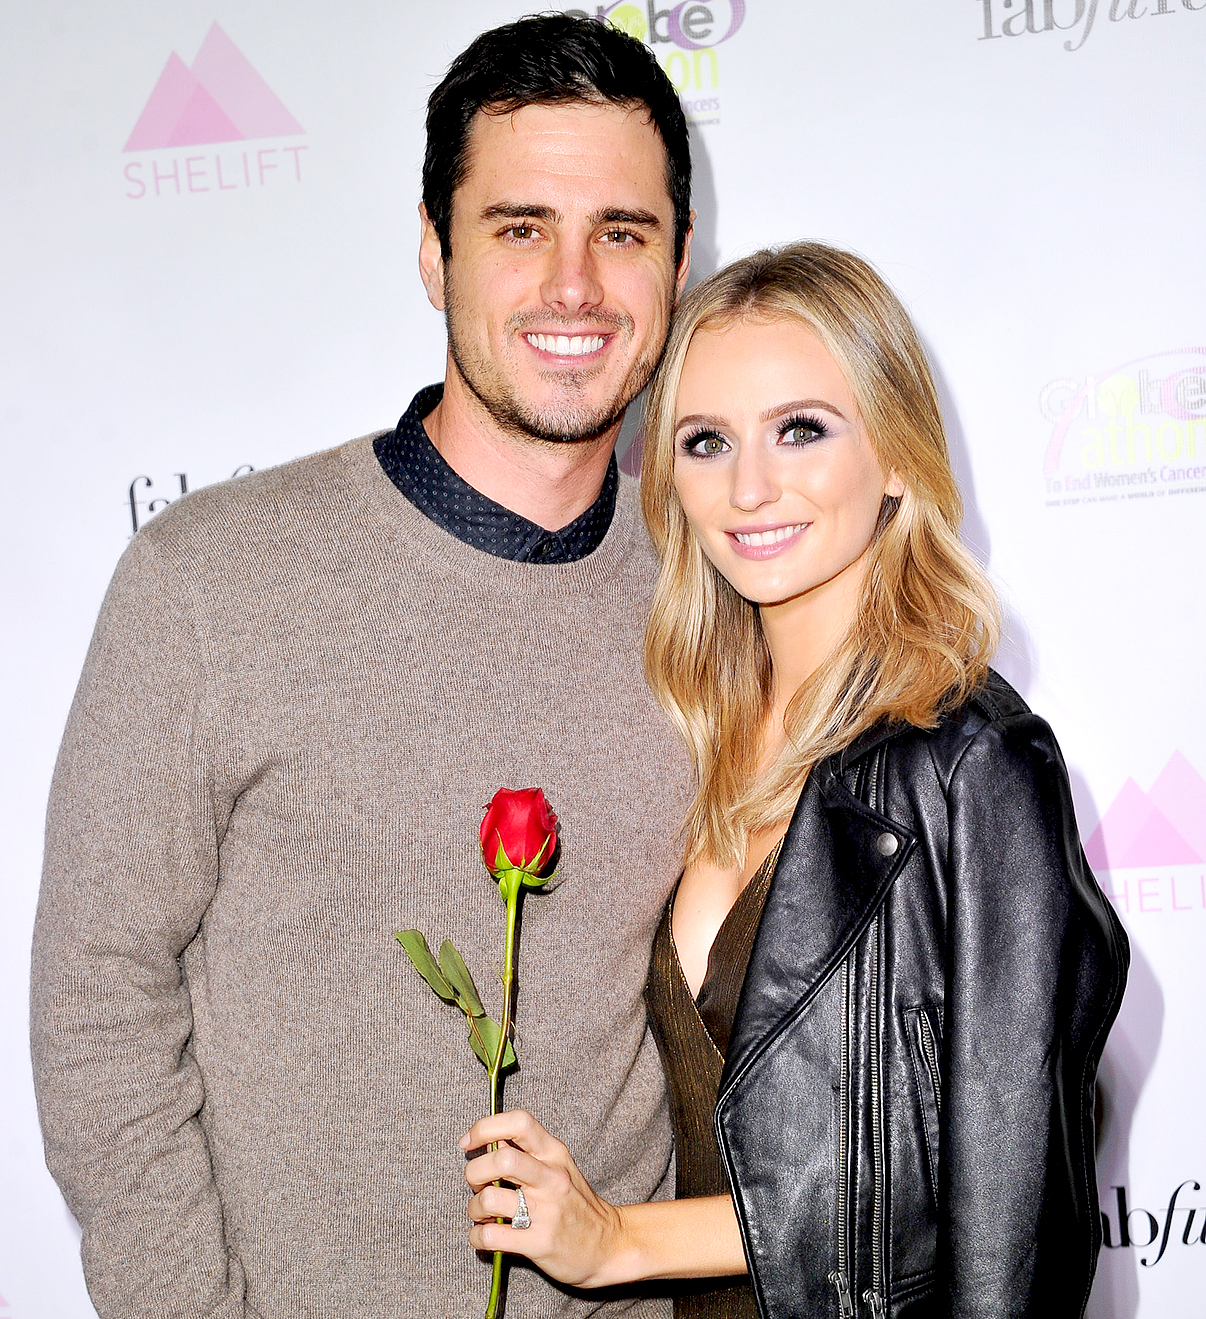 Ben Higgins and Lauren Bushnell attend the premiere party for The Bachelor Charity at Sycamore Tavern on January 2, 2017 in Los Angeles, California.